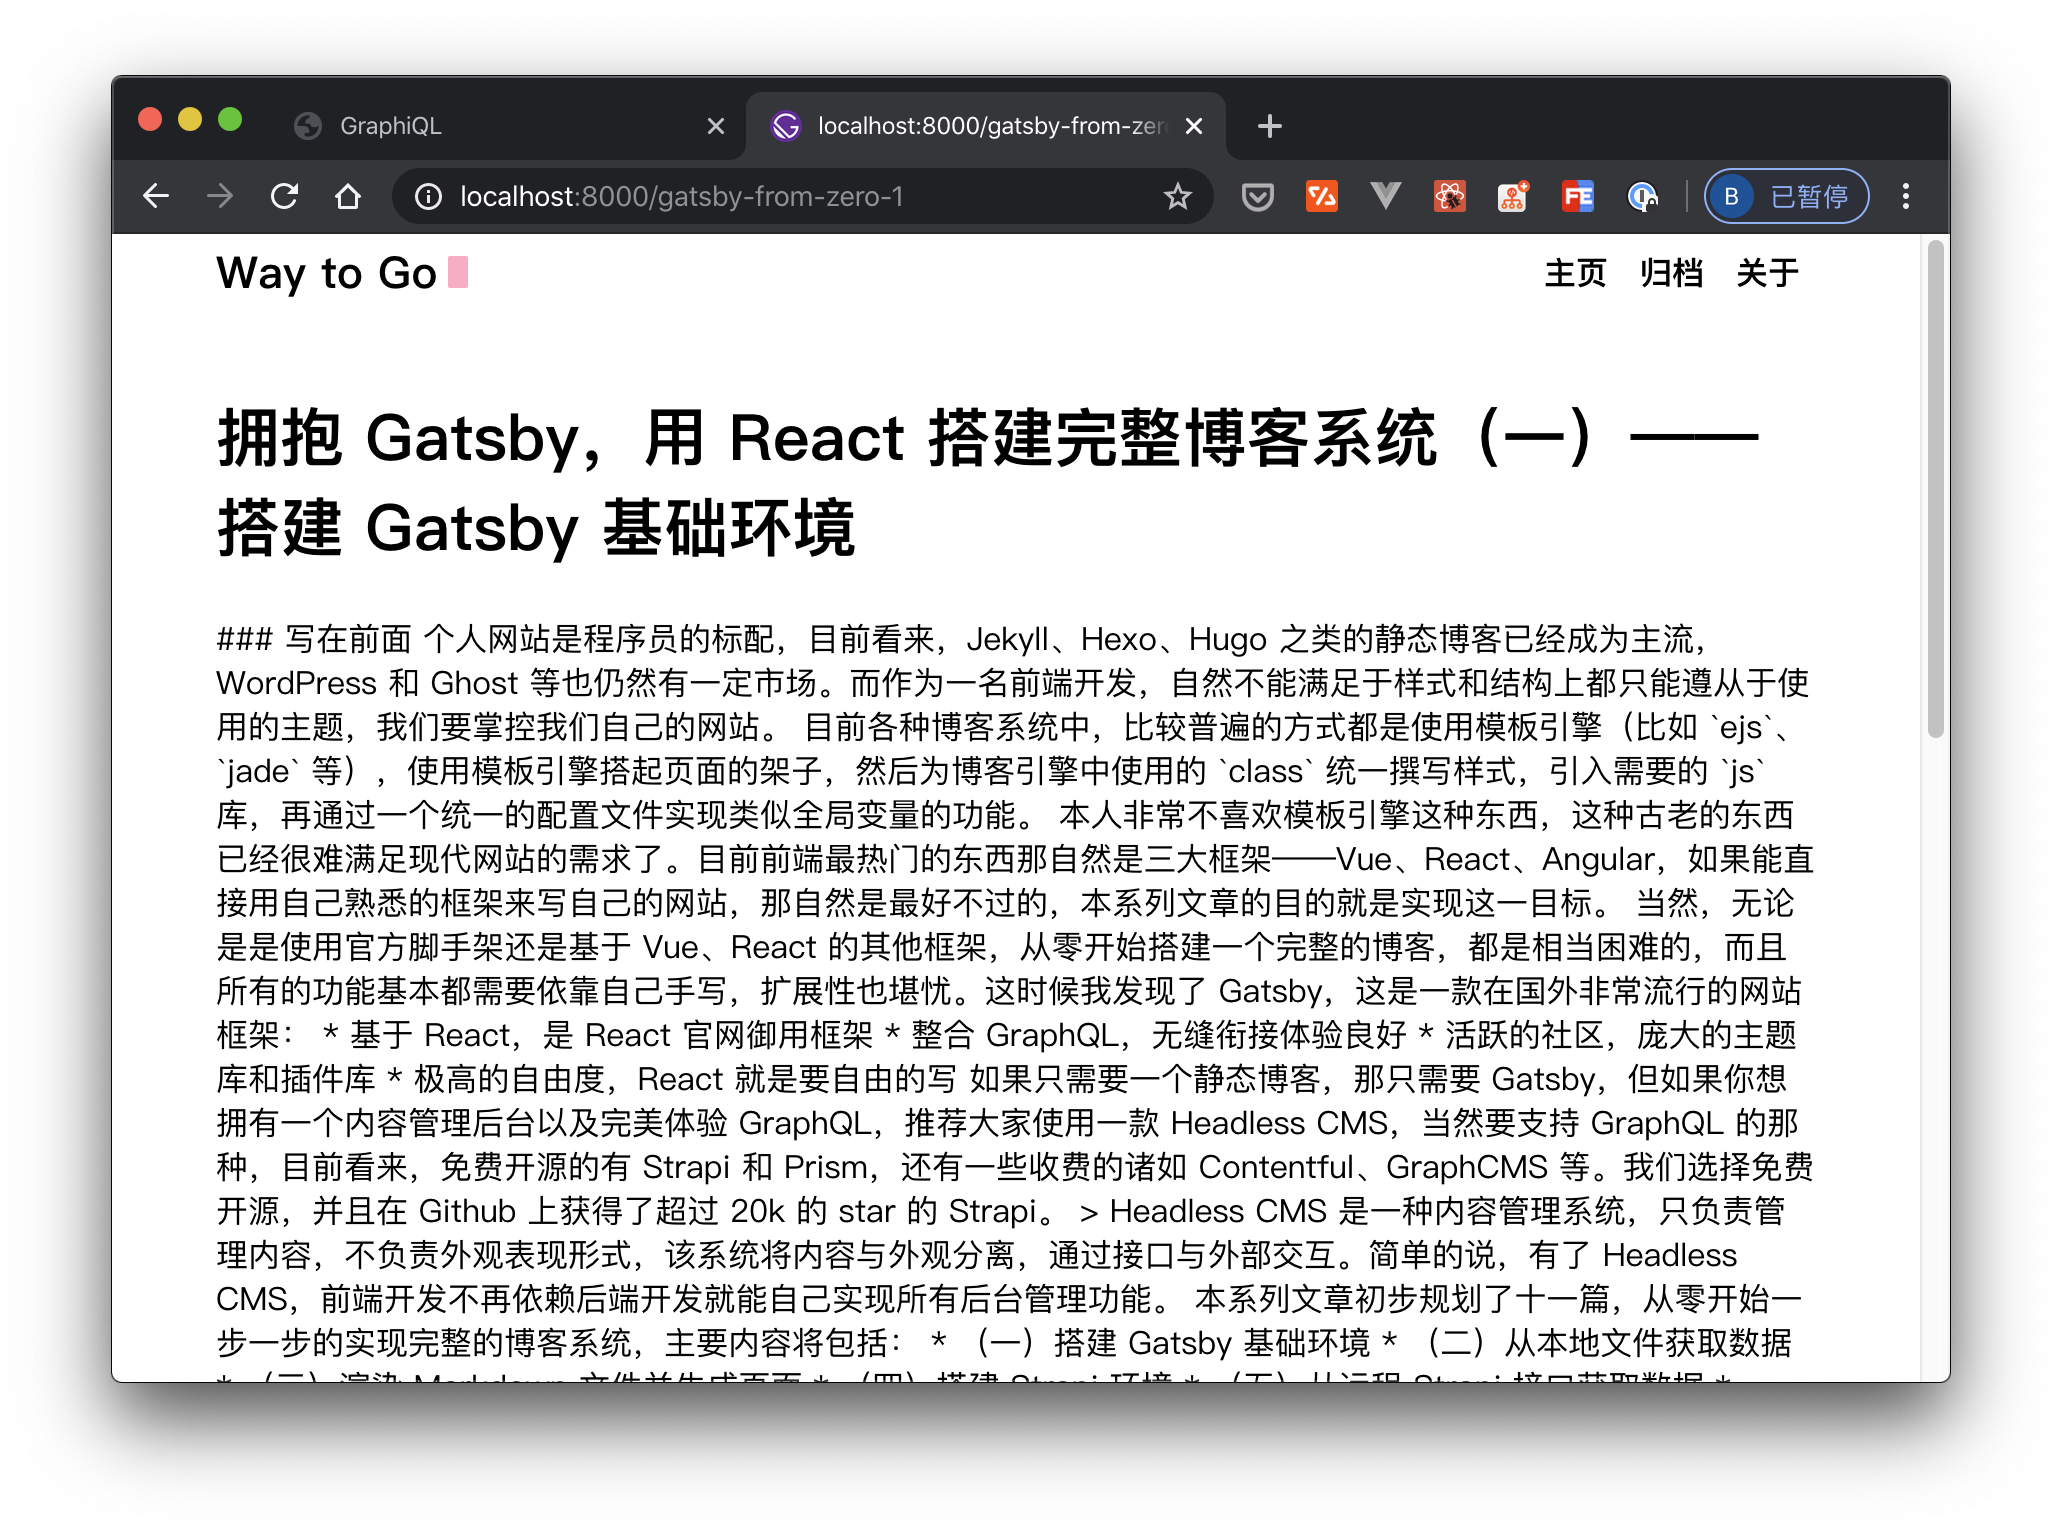 gatsby-from-zero-5-page-no-markdown.png